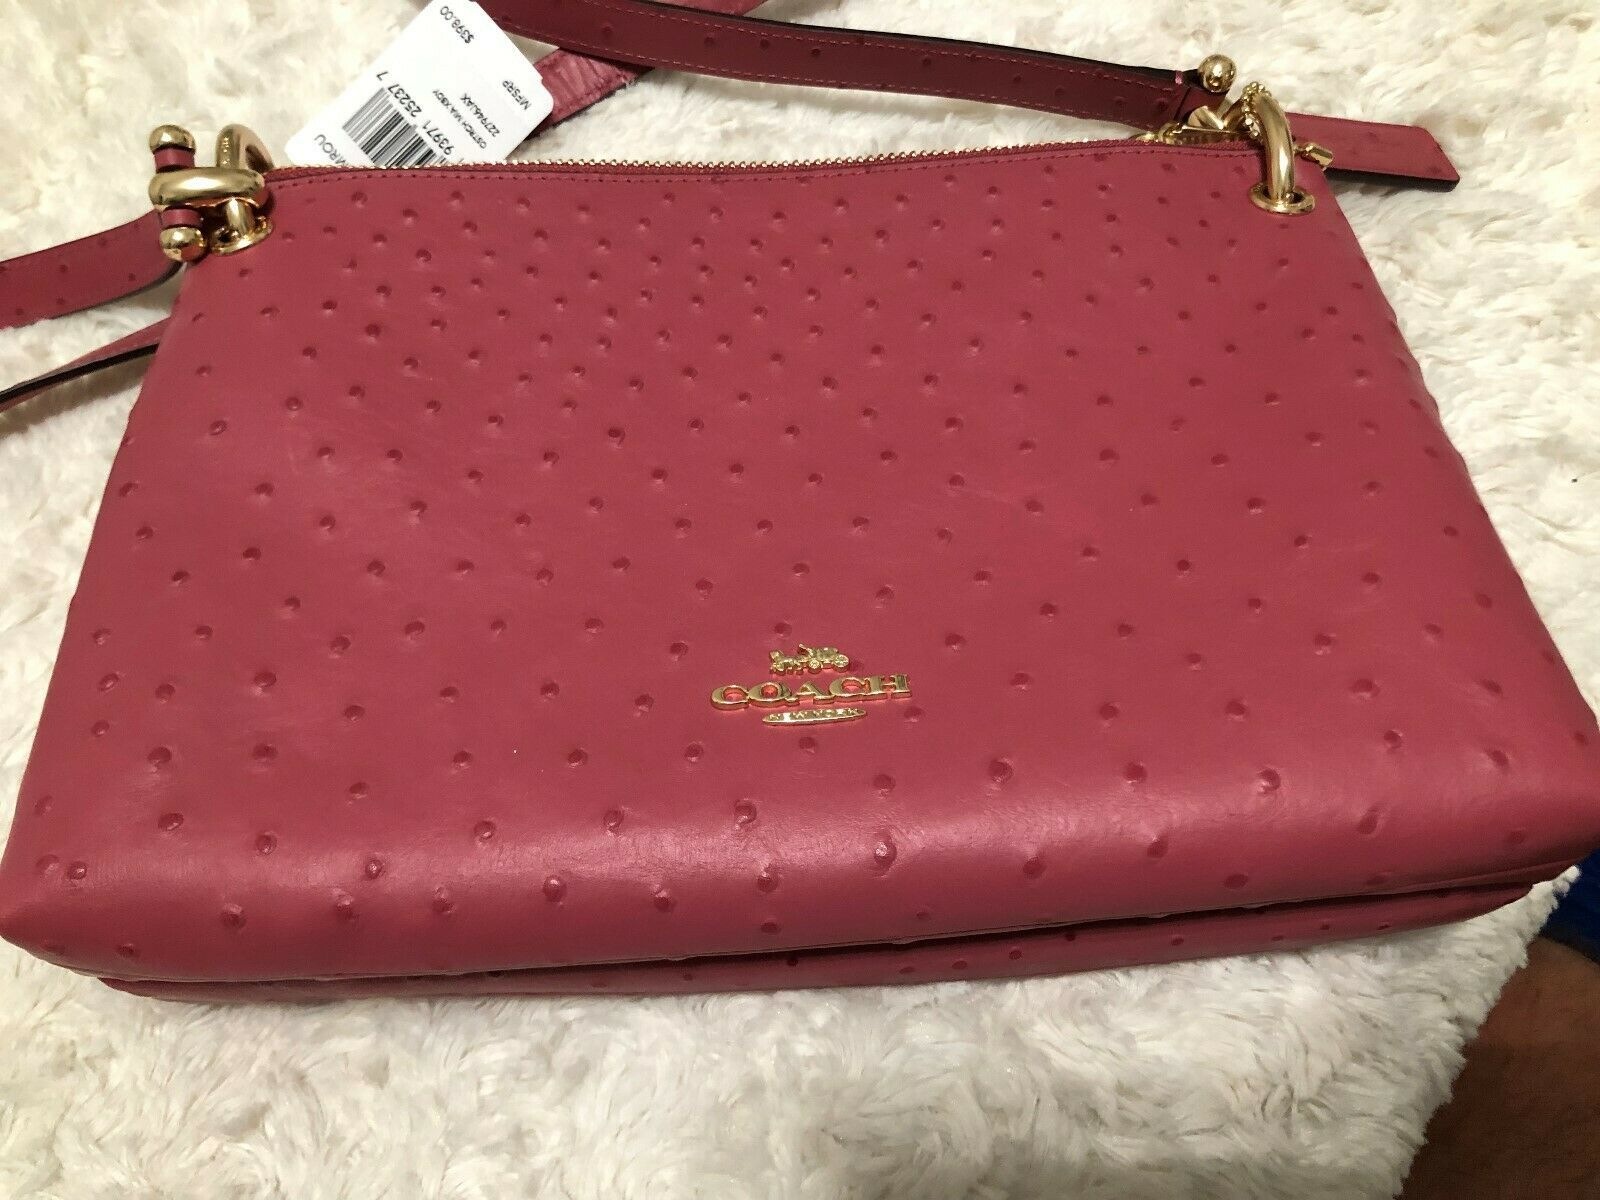 Coach Mia Ostrich Double Zip/Gusset 3 Chamber Crossbody Bag in Rouge $398 F76644